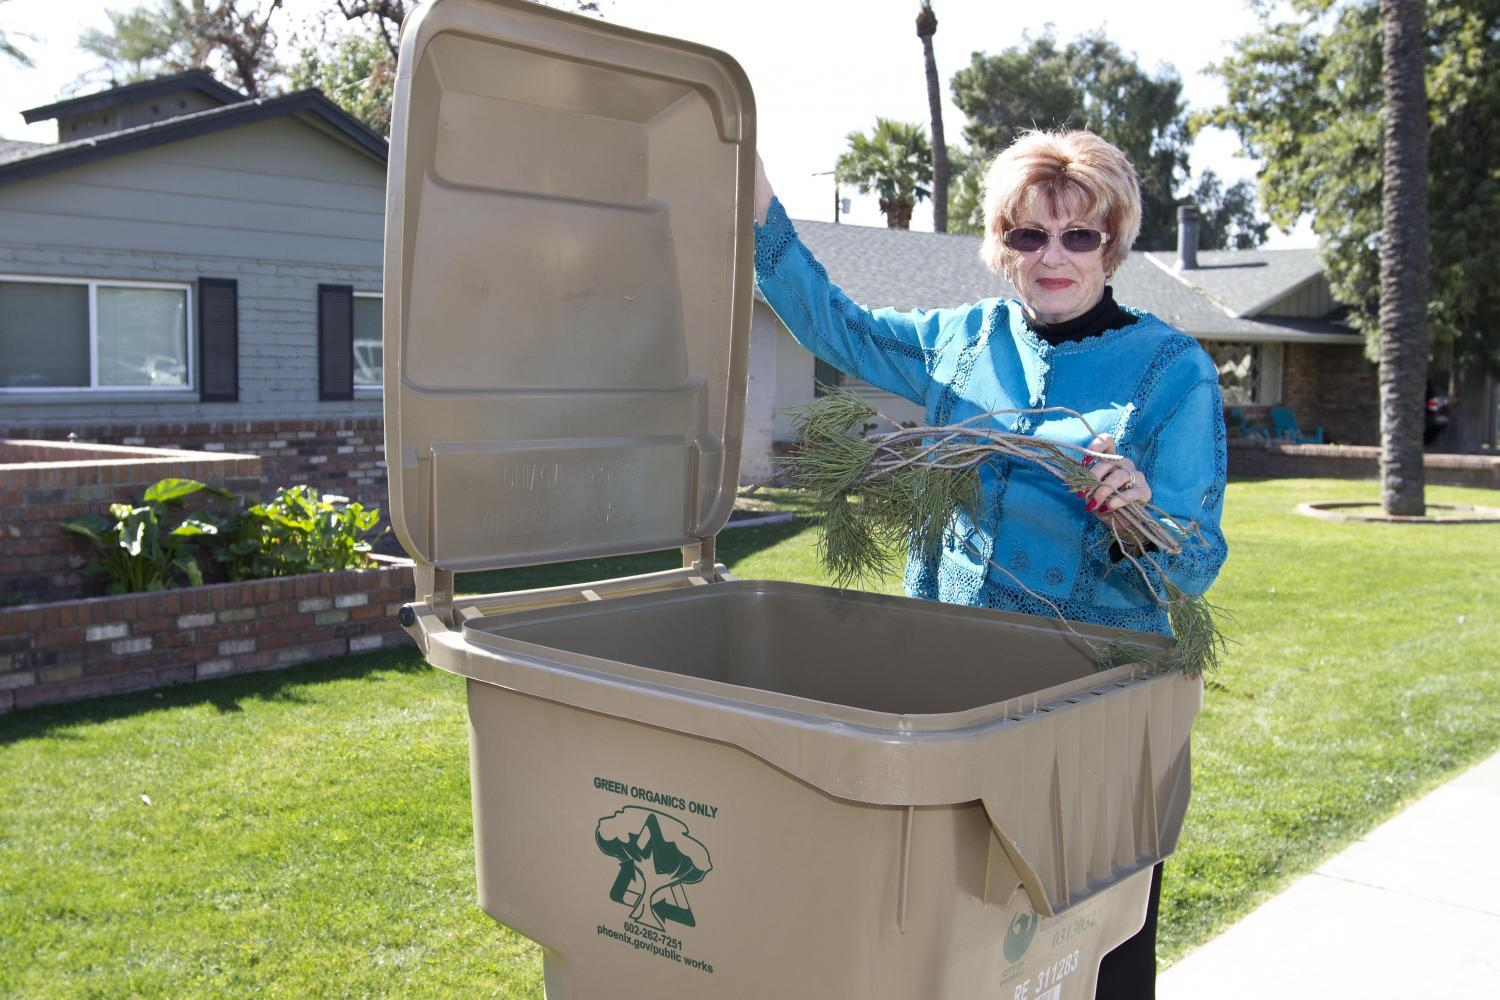 woman standing next to recycle bin